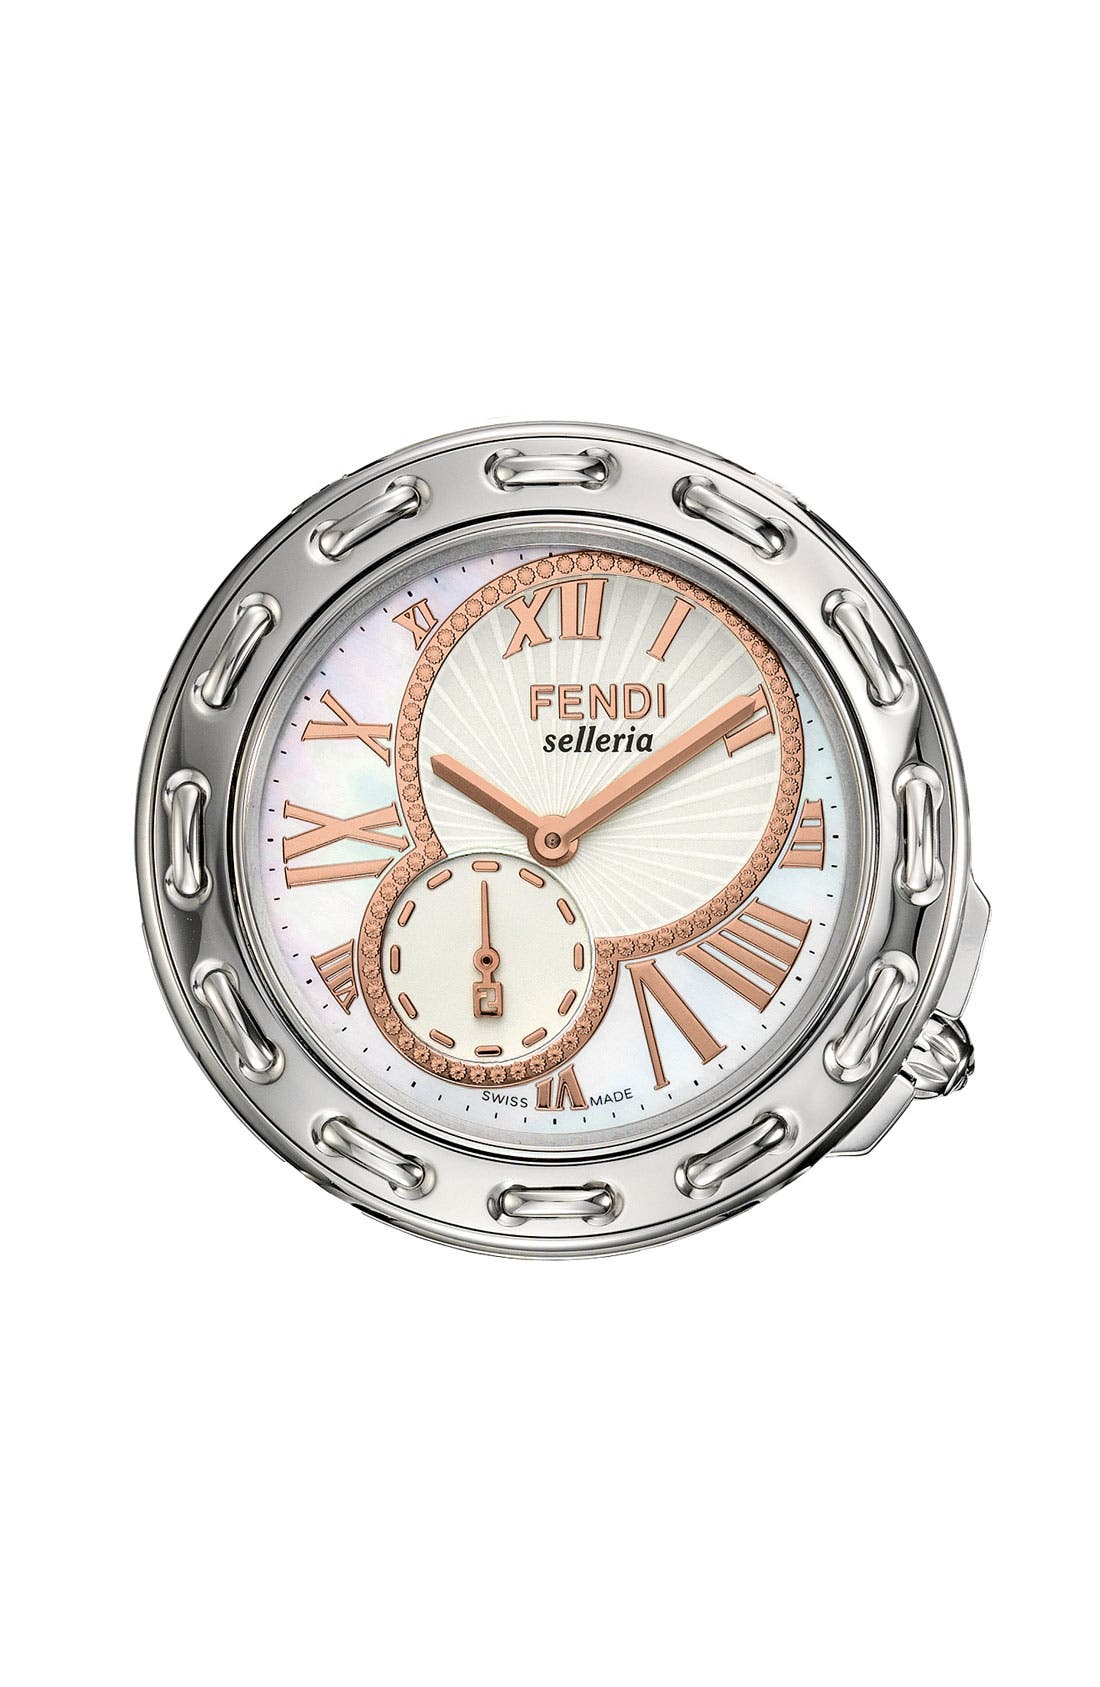 Alternate Image 1 Selected - Fendi 'Selleria' Round Watch Case, 37mm